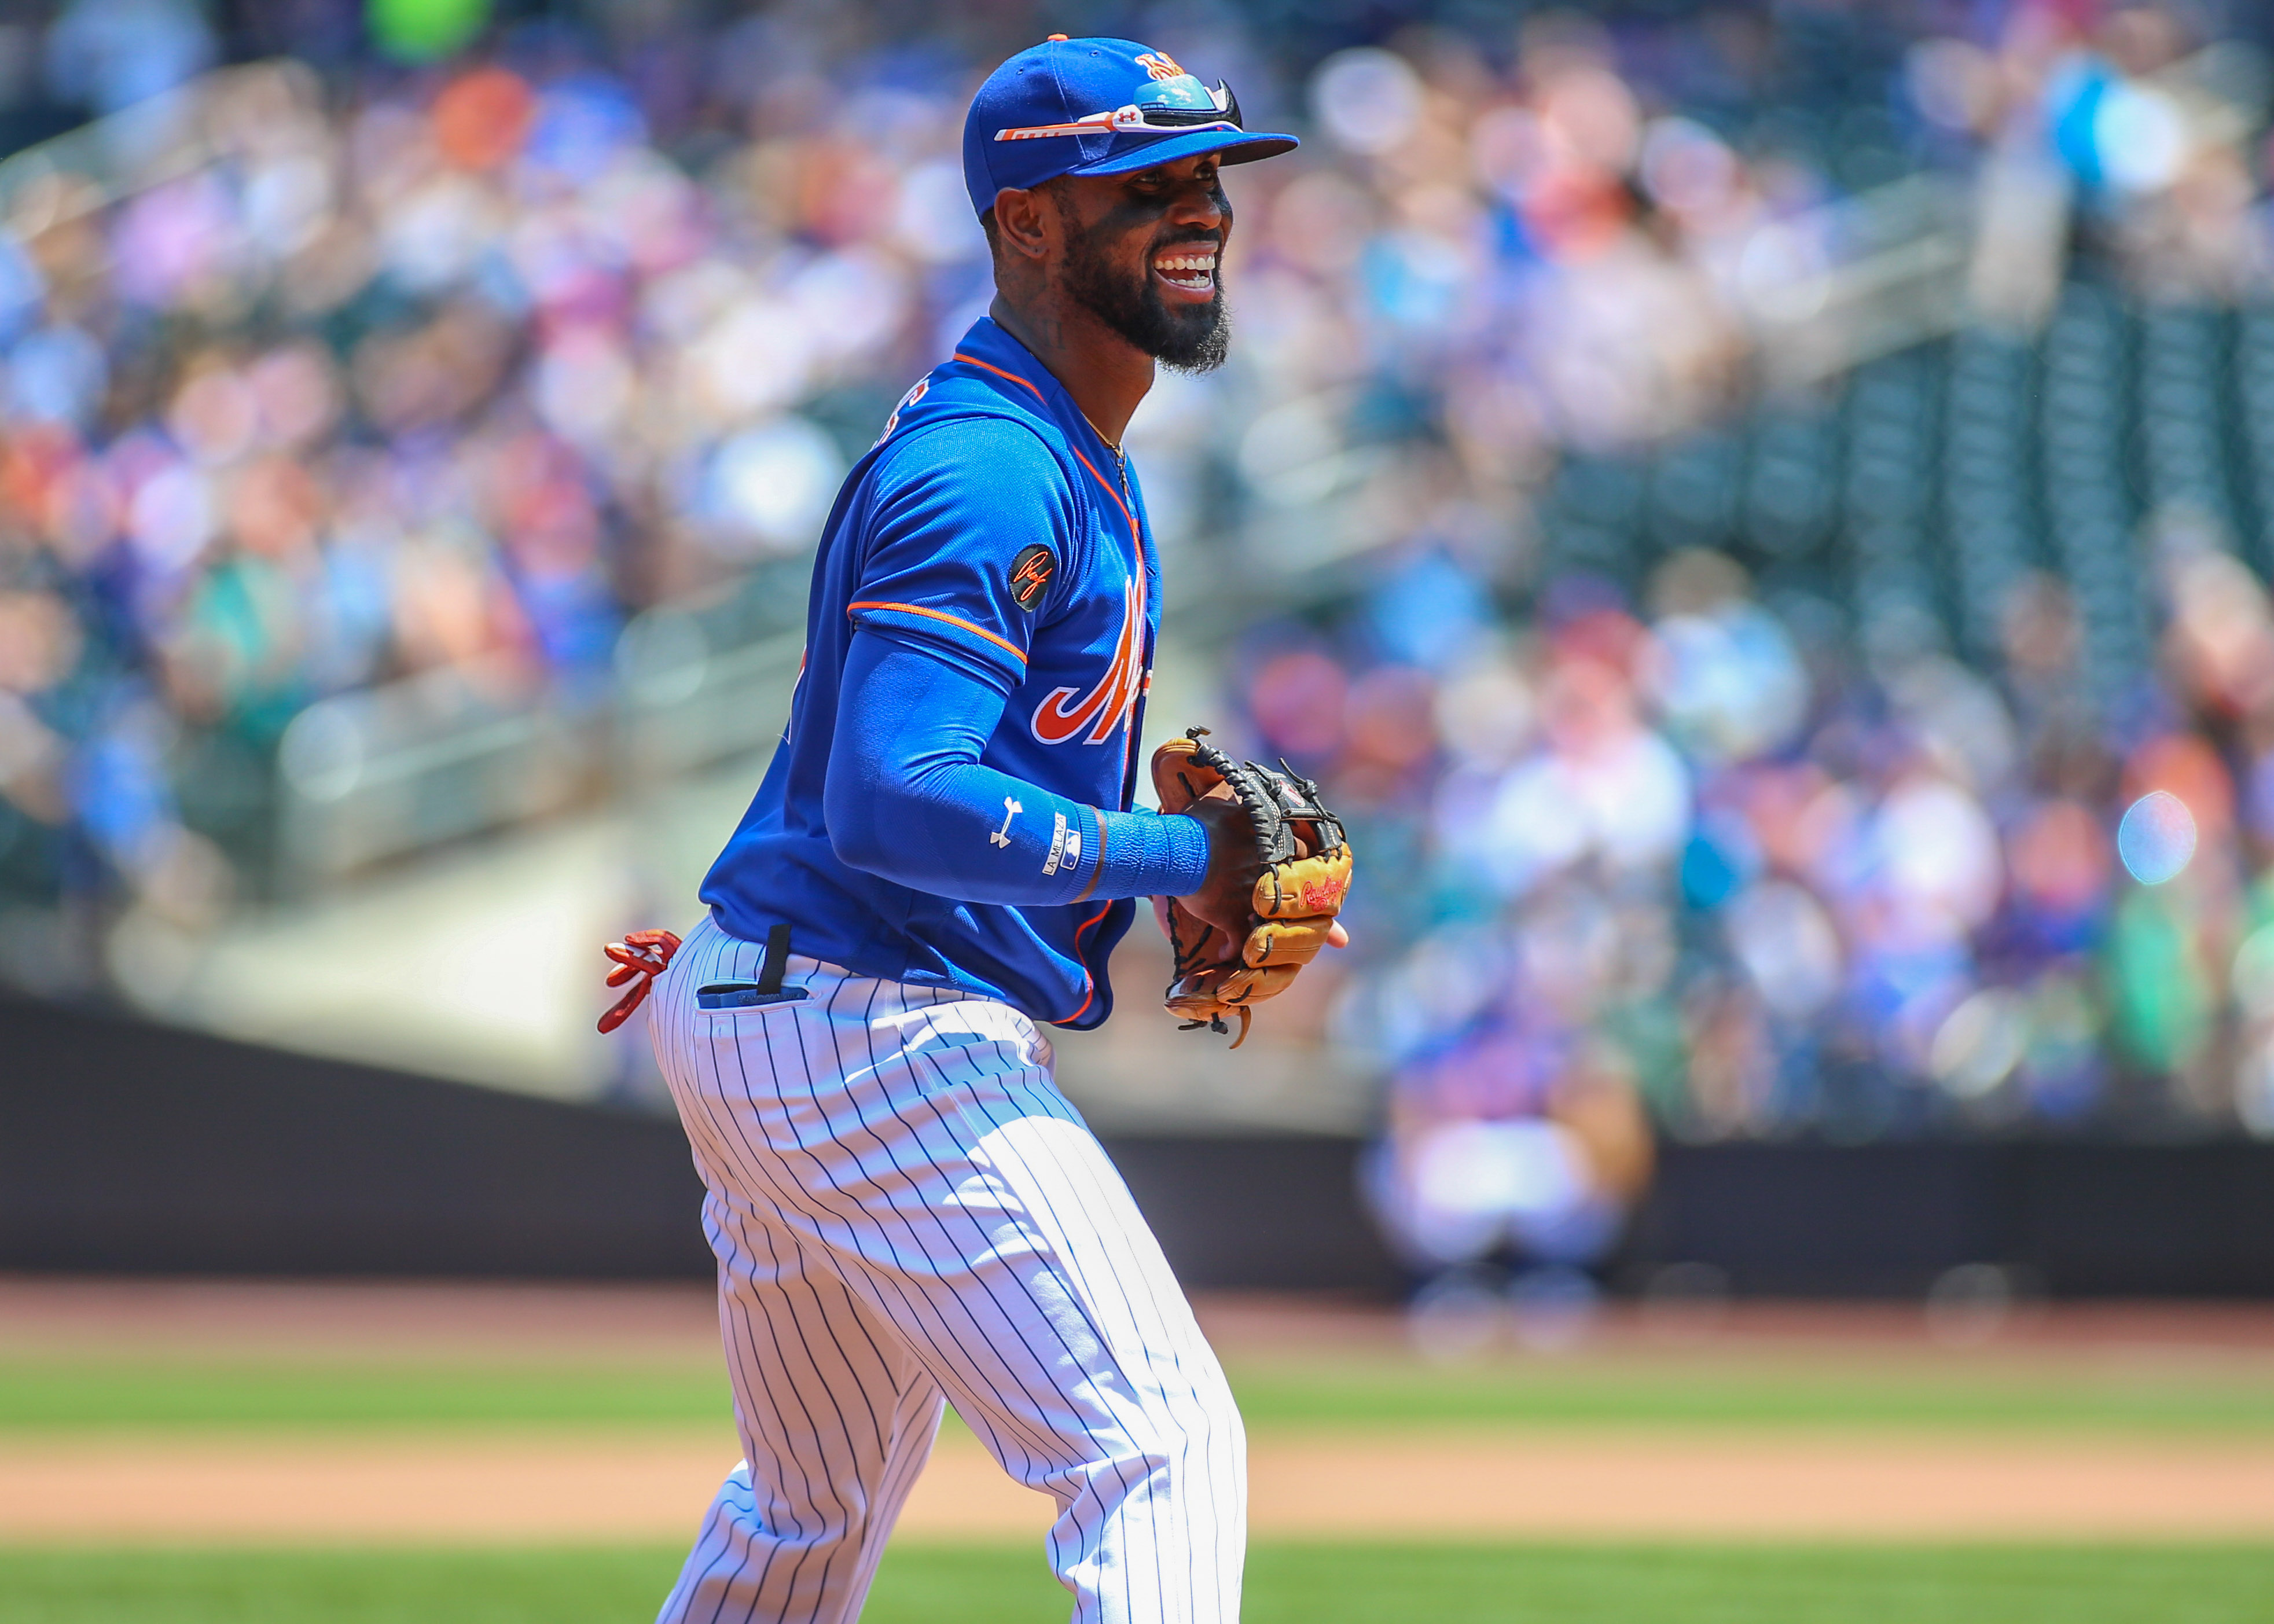 Jose Reyes' Roster Status With New York Mets Hits Deadspin